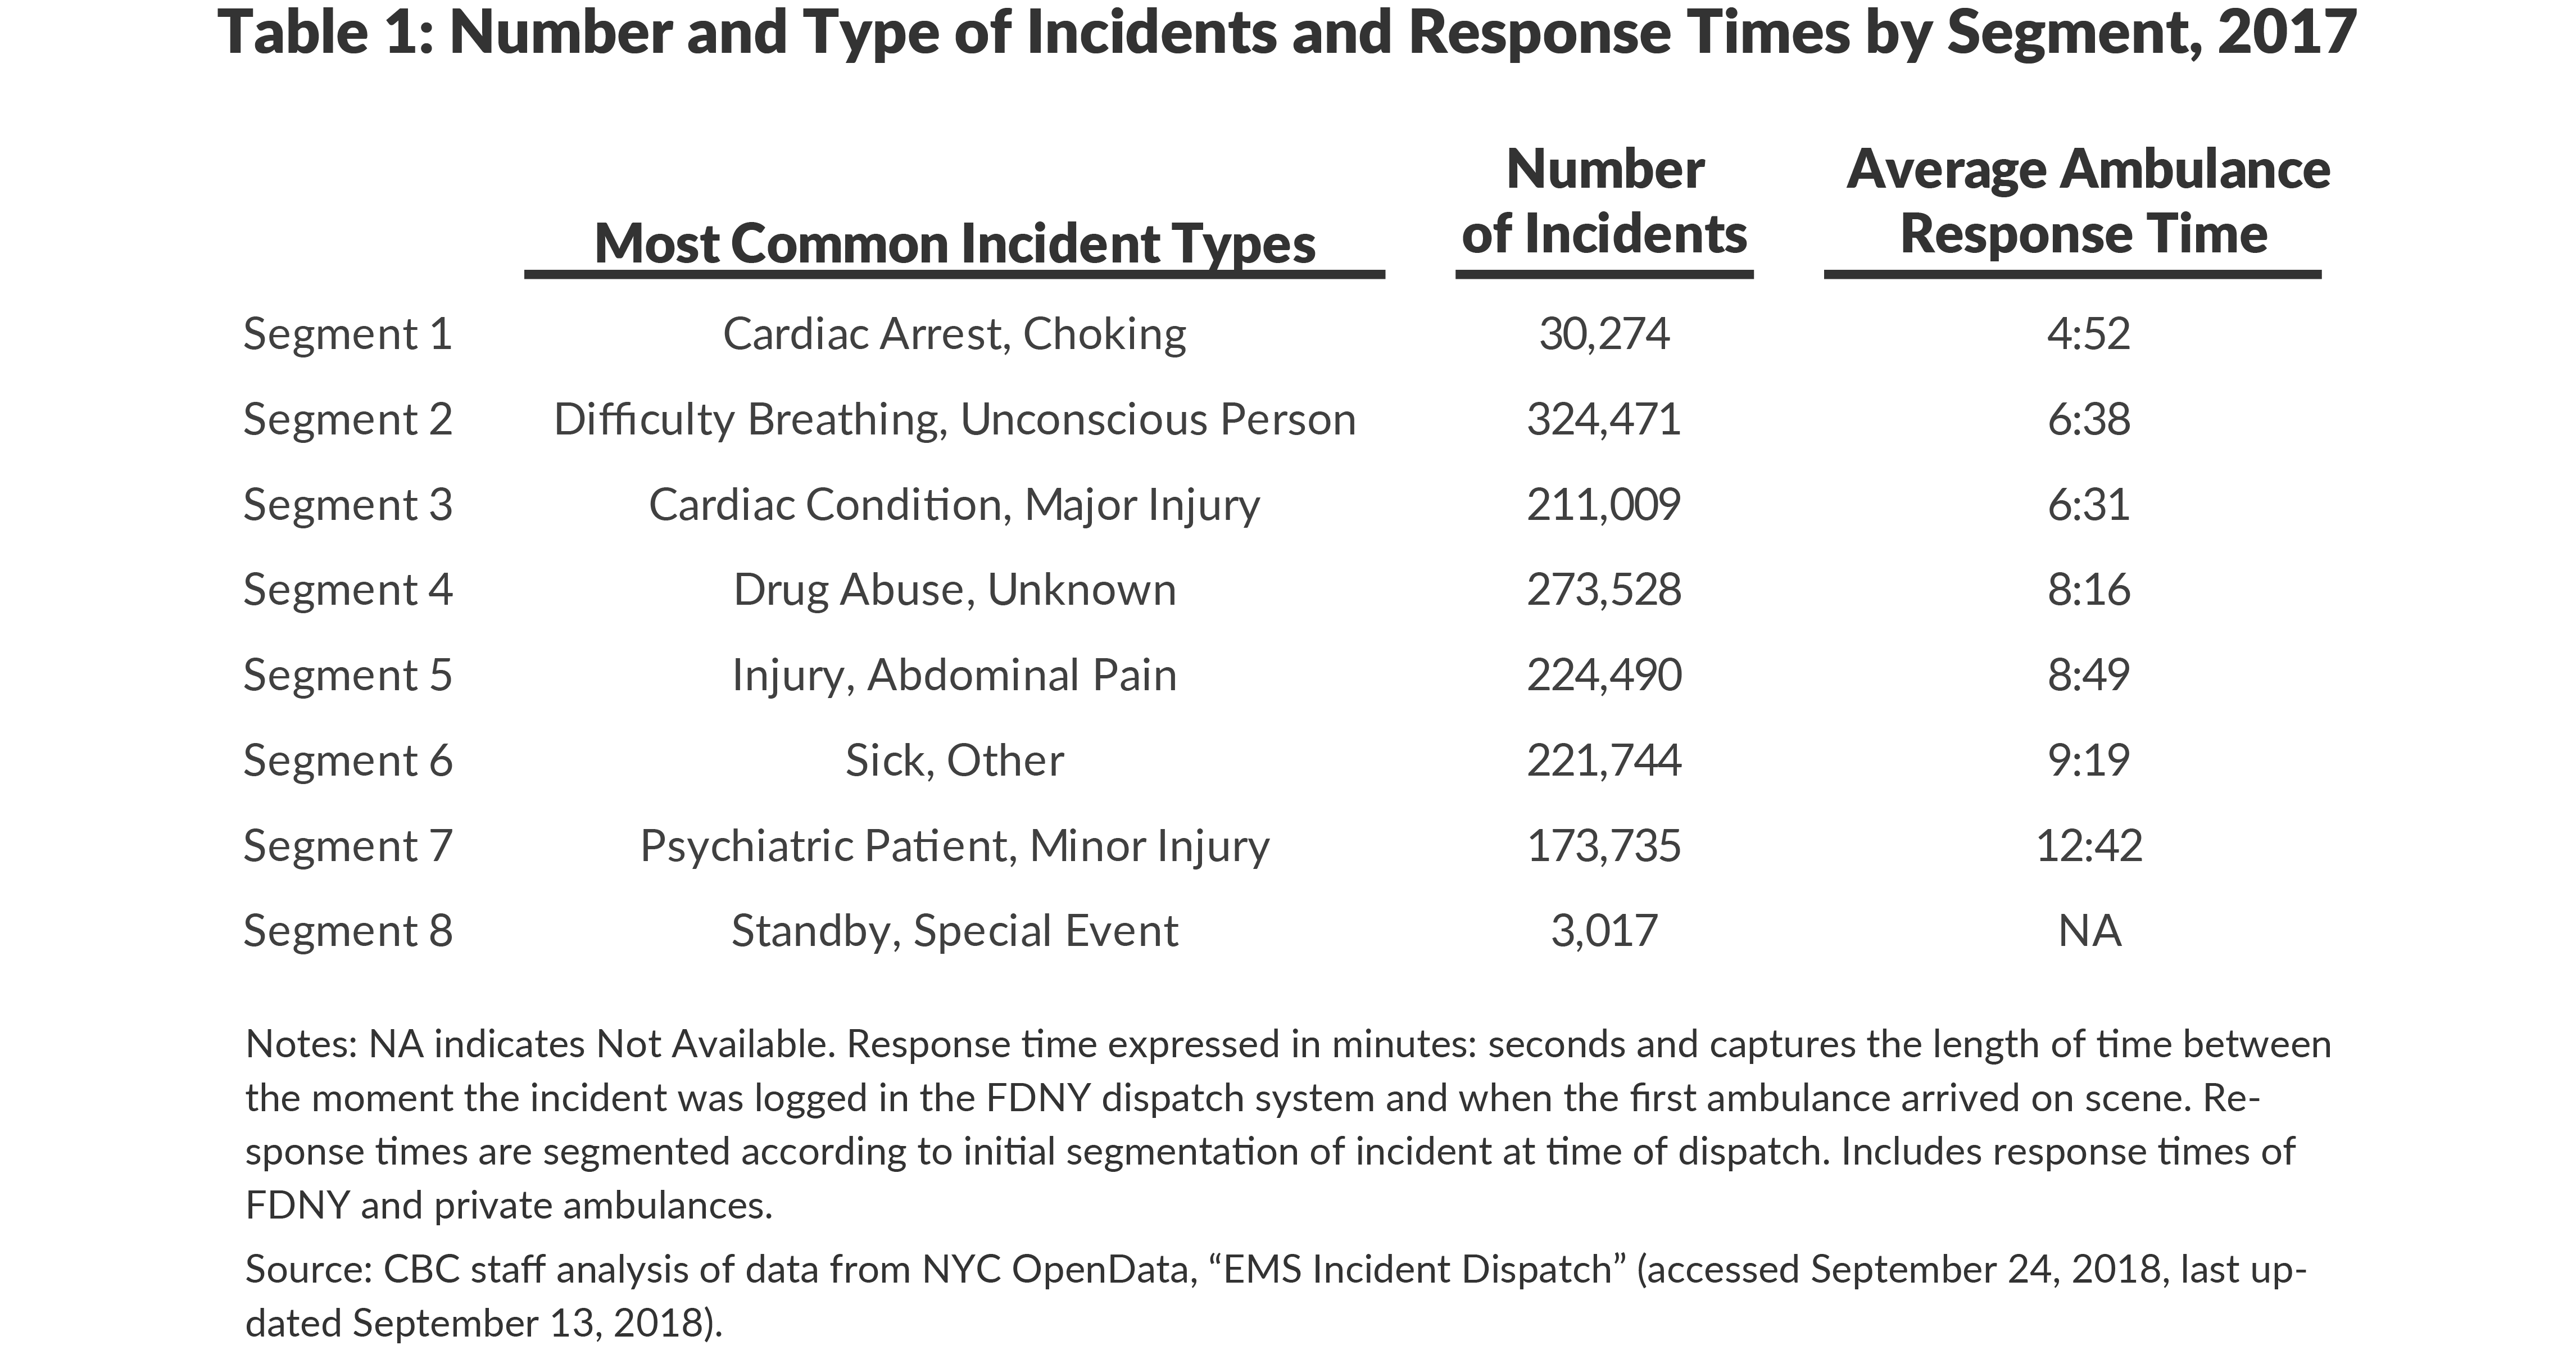 Table 1: Number and Type of Incidents and Response Times by Segment, 2017